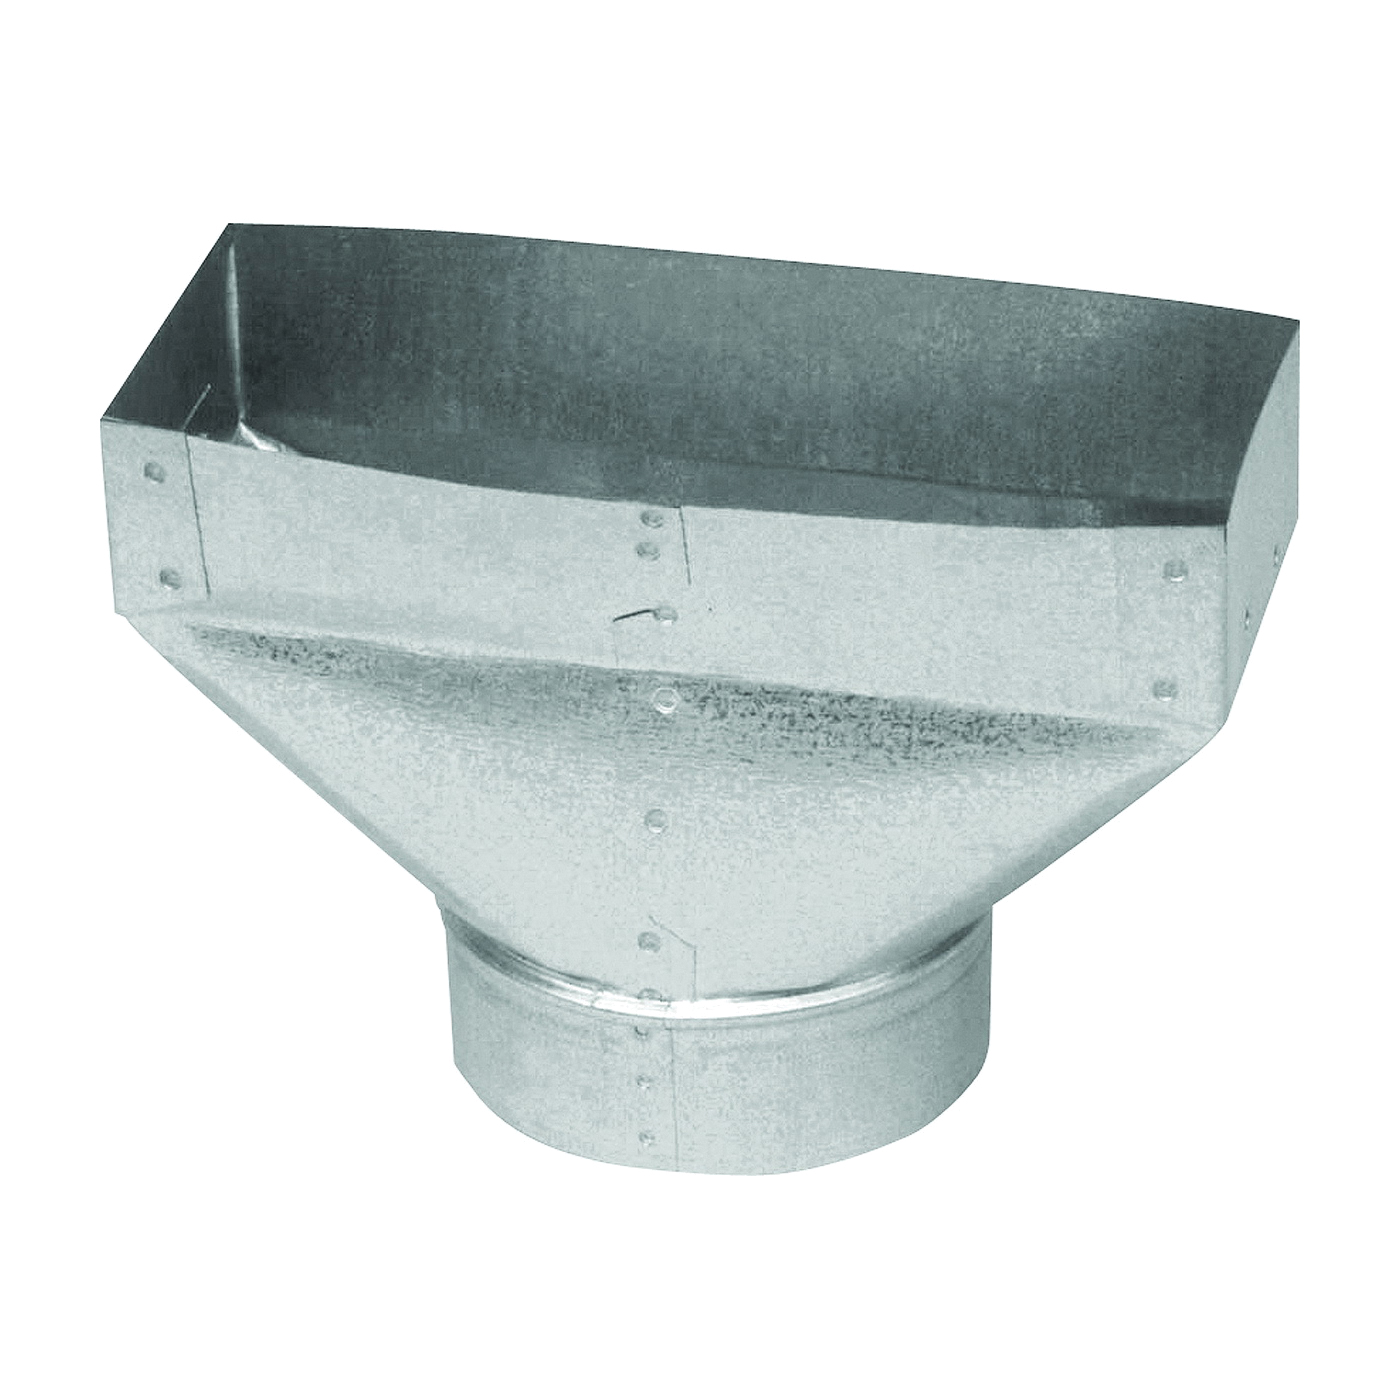 Picture of Imperial GV0701 Universal Boot, 3 in L, 10 in W, 6 in H, Steel, Galvanized